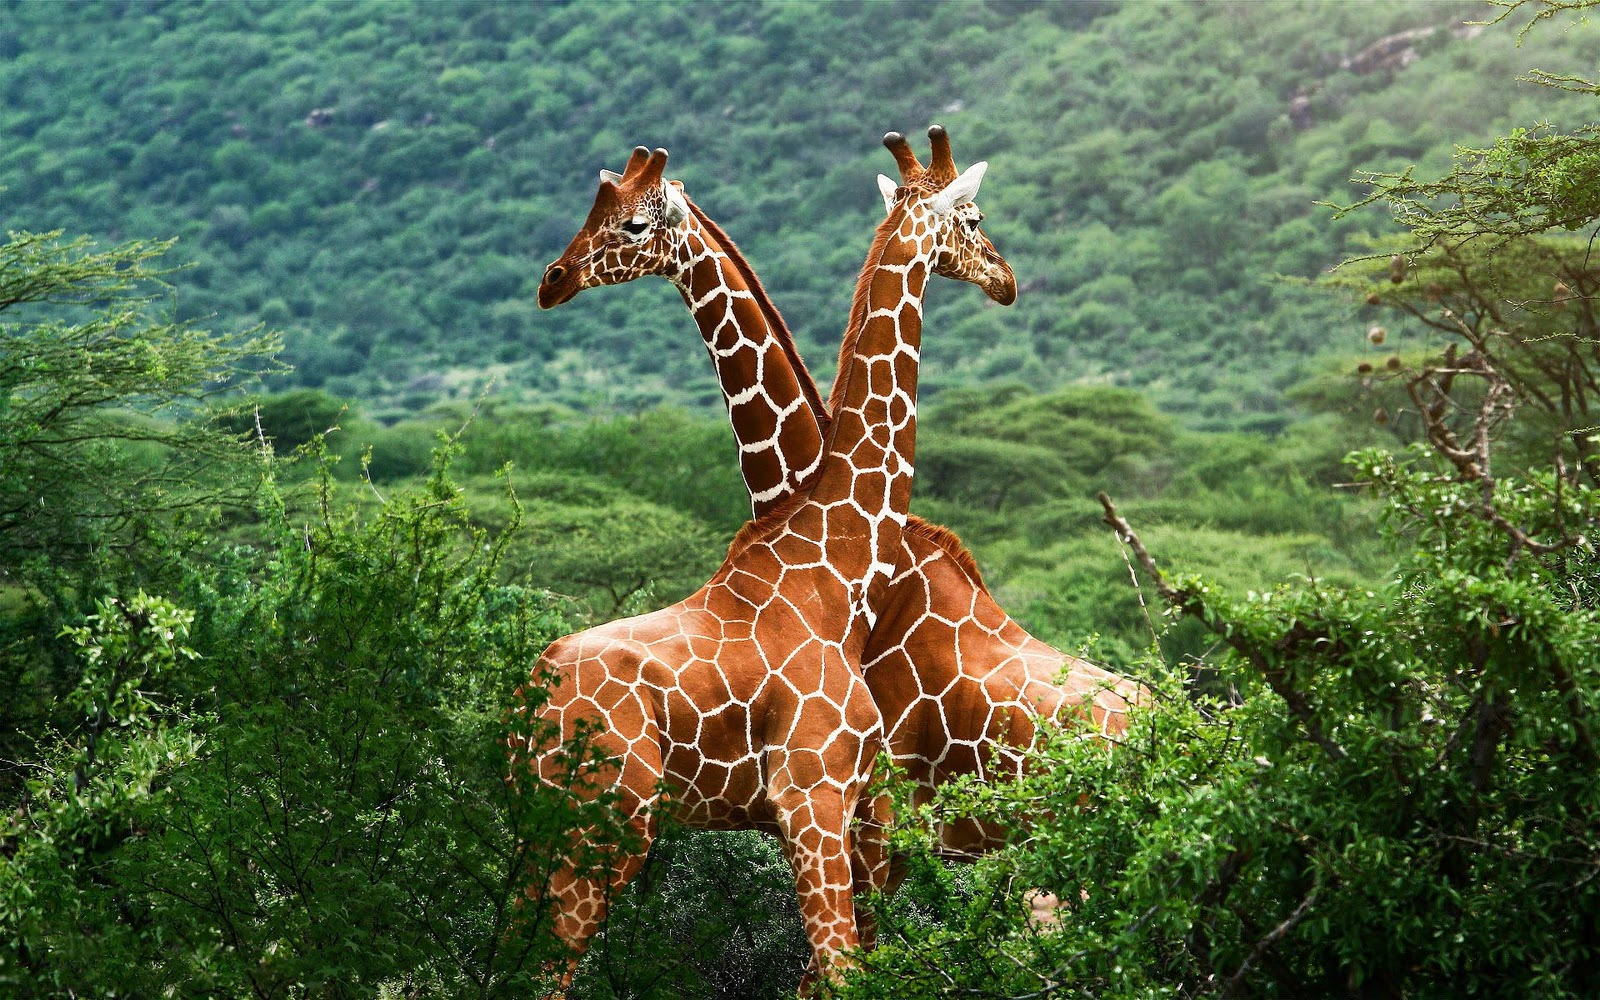 giraffe wallpapers hd pictures - photo #31